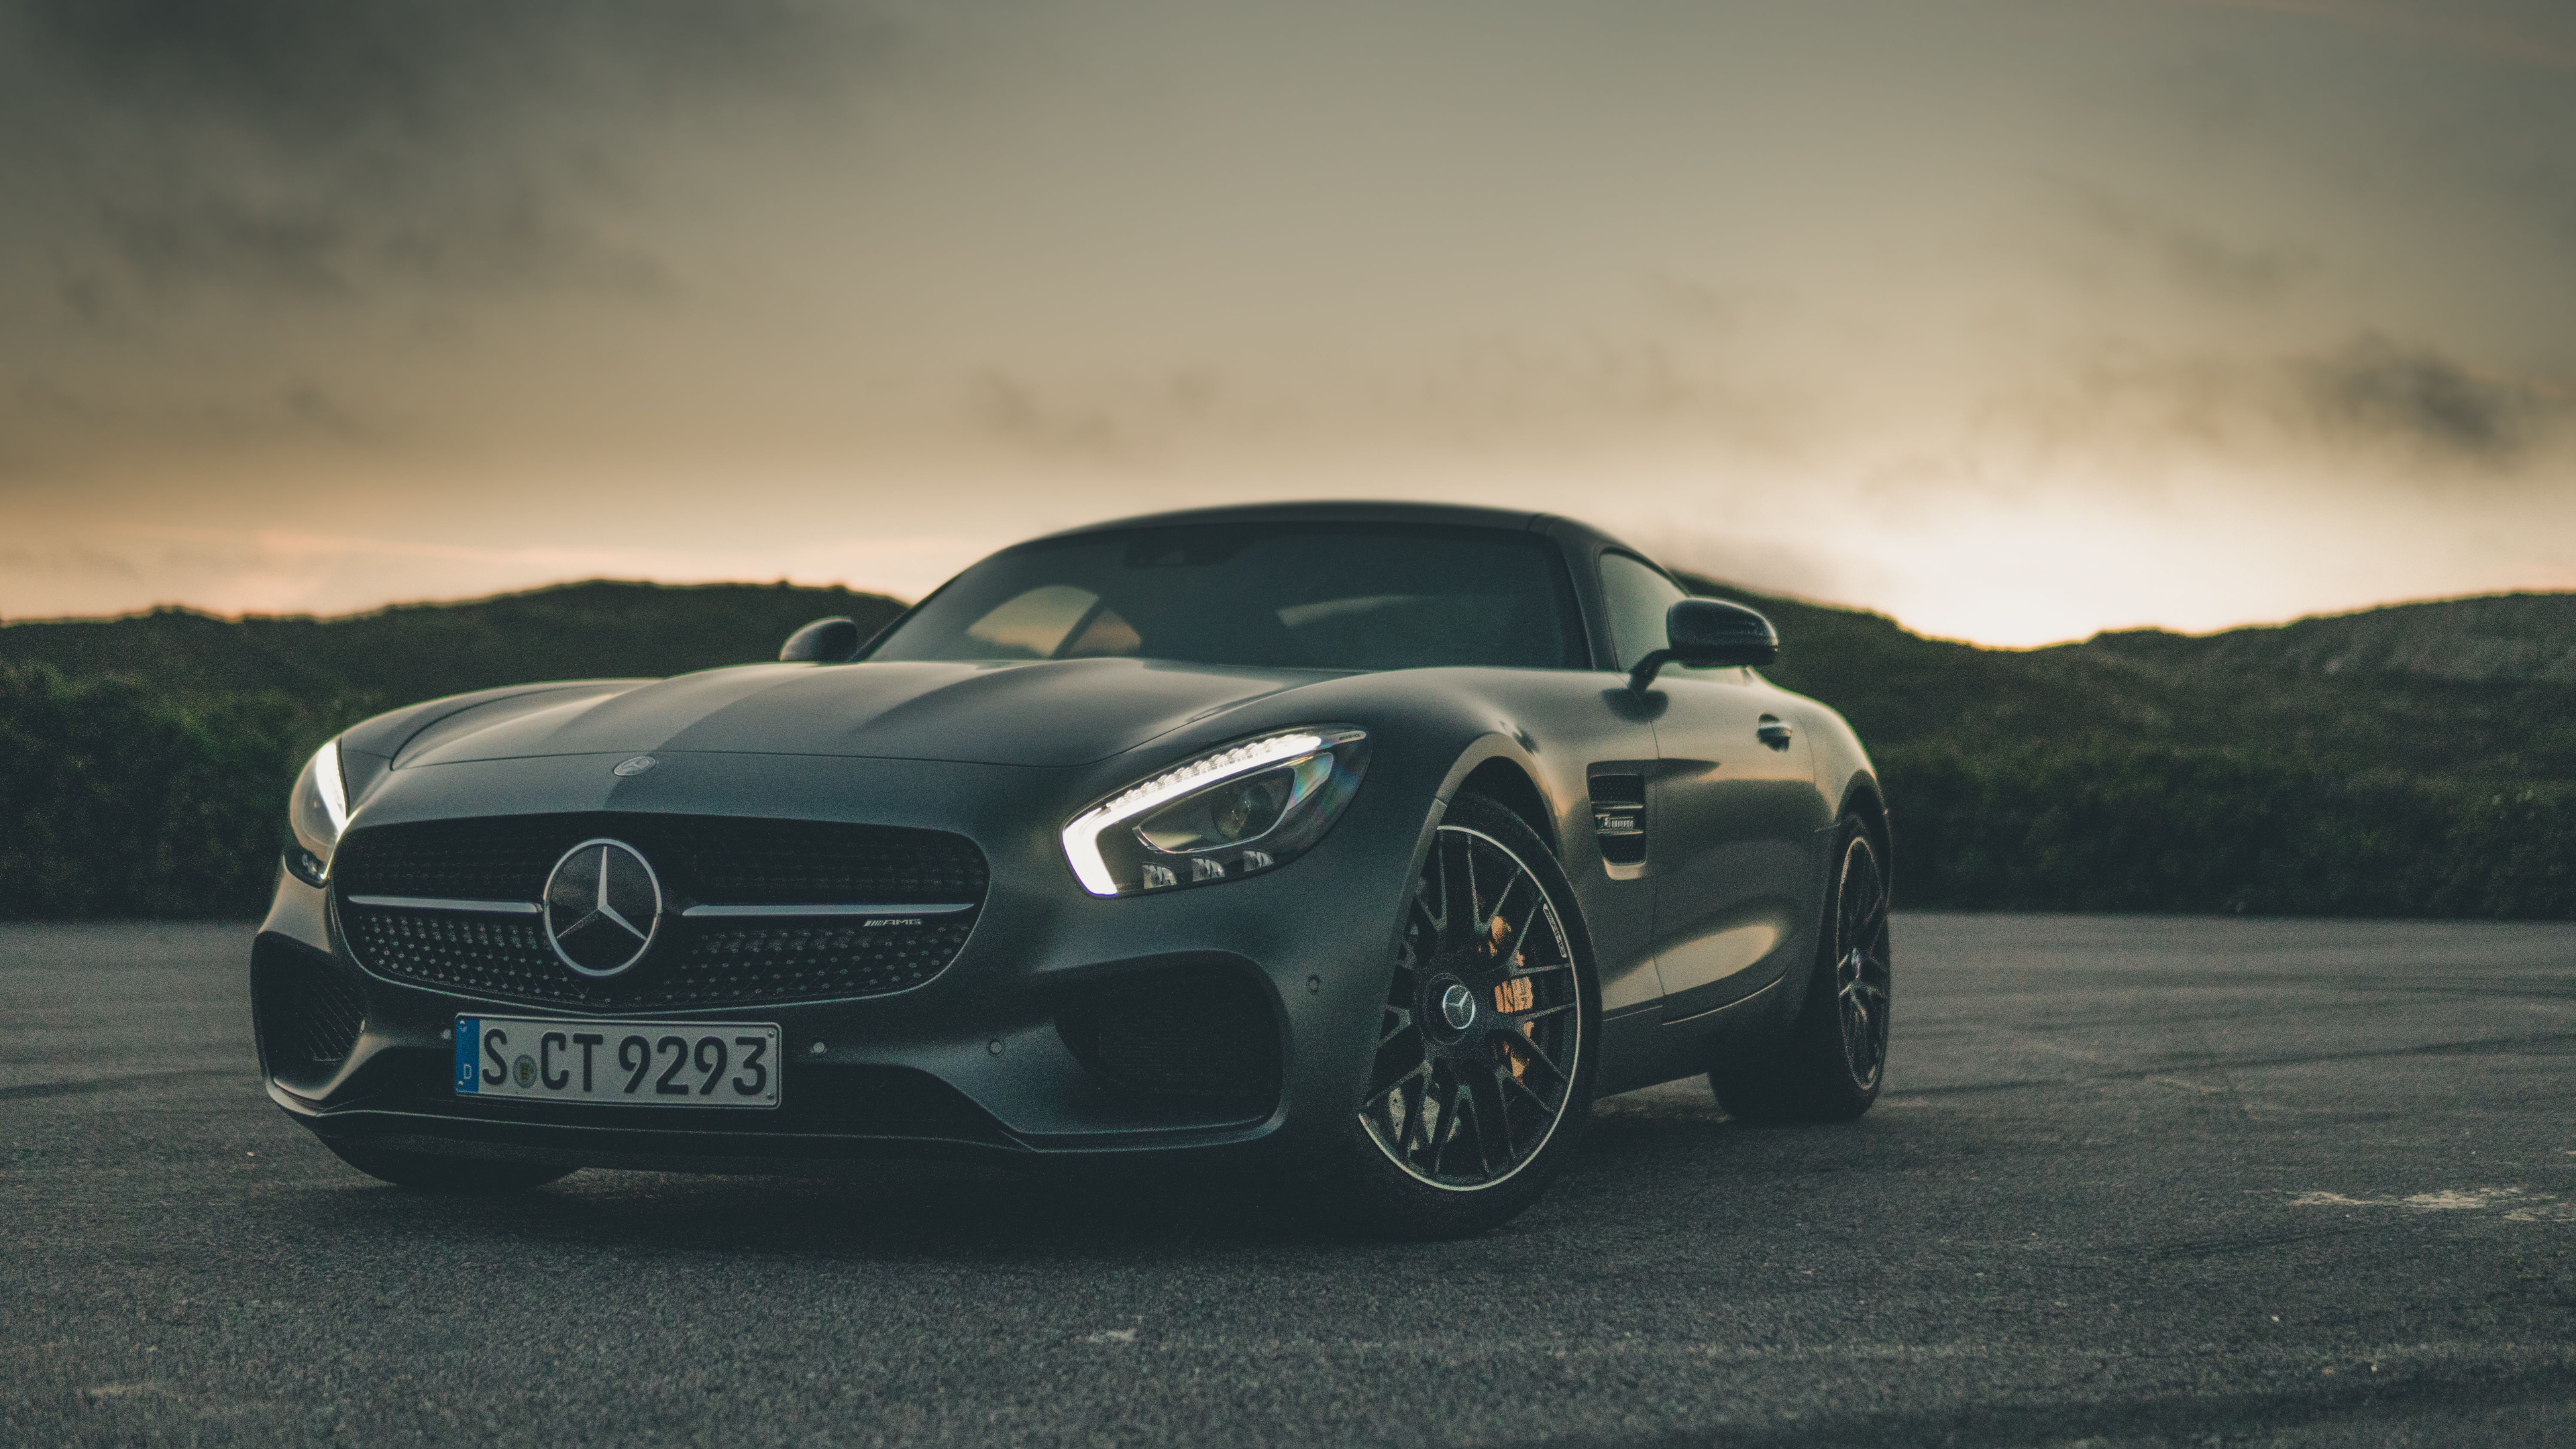 black mercedes benz amg gt 4k 1546362618 - Black Mercedes Benz Amg GT 4k - mercedes wallpapers, mercedes amg gtr wallpapers, hd-wallpapers, cars wallpapers, 5k wallpapers, 4k-wallpapers, 2018 cars wallpapers